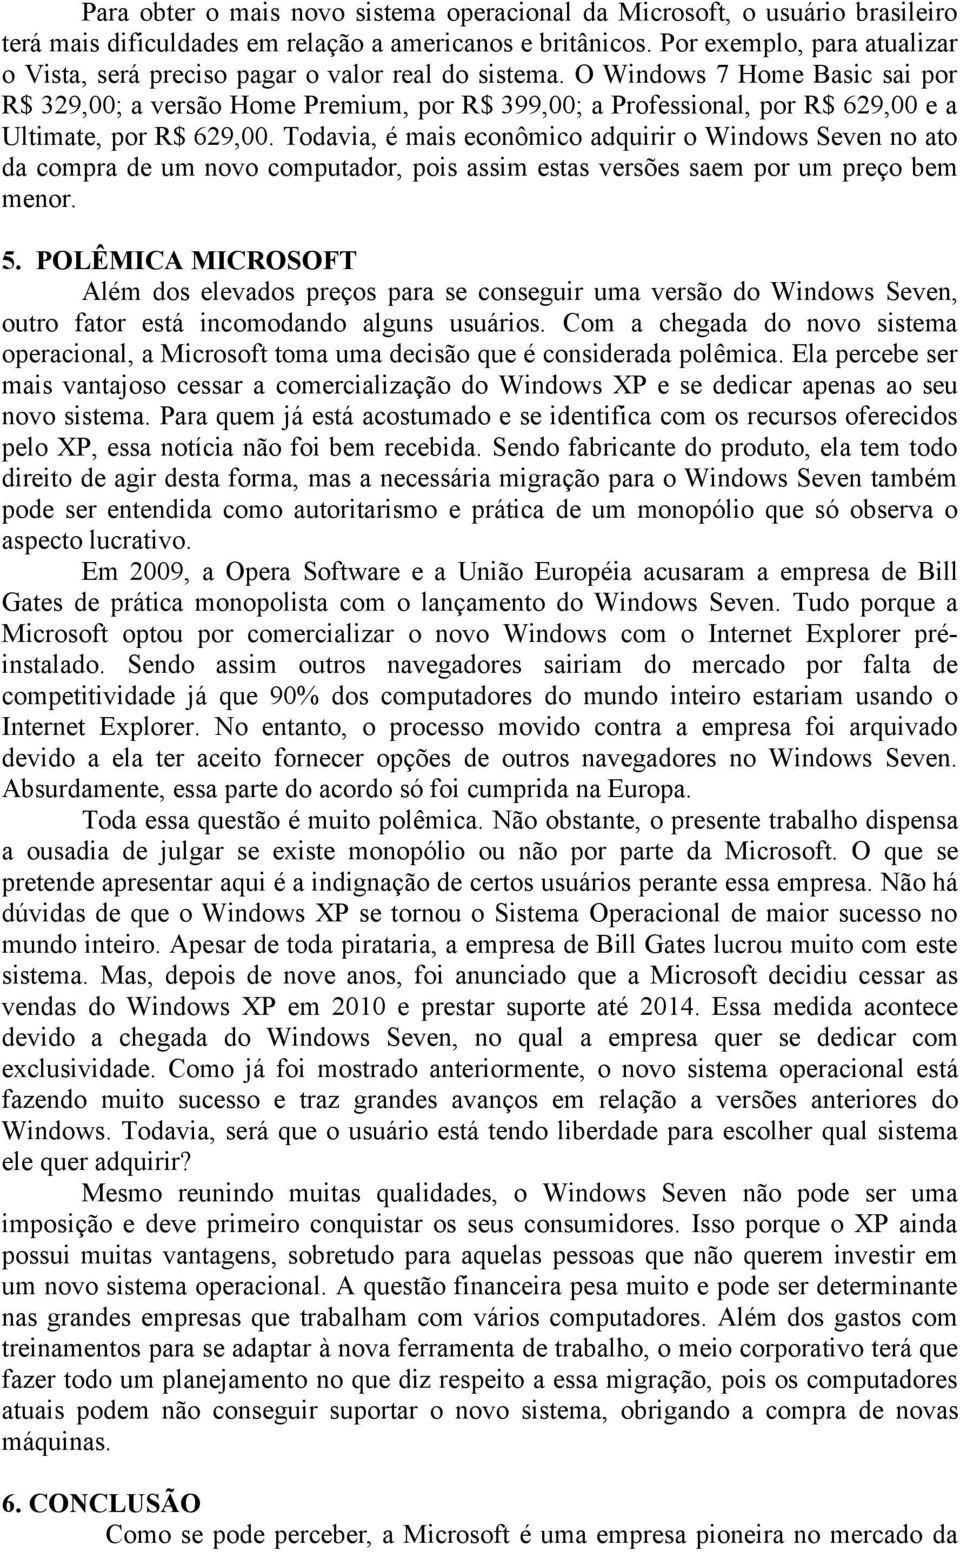 O Windows 7 Home Basic sai por R$ 329,00; a versão Home Premium, por R$ 399,00; a Professional, por R$ 629,00 e a Ultimate, por R$ 629,00.